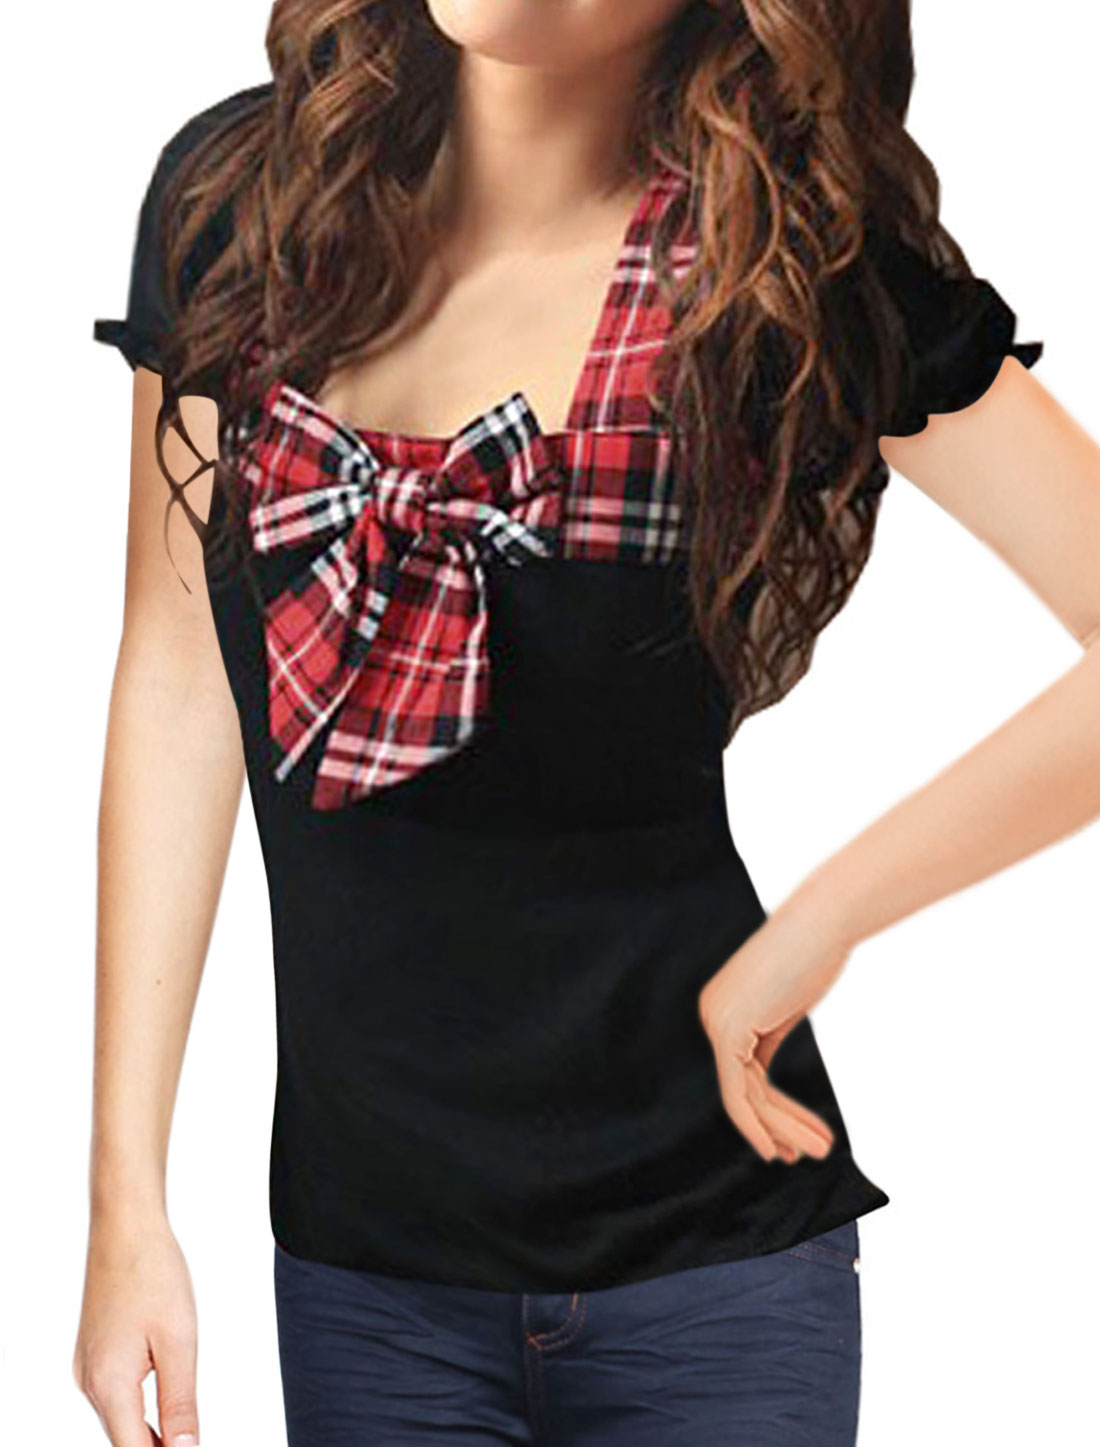 Woman Puff Sleeves Preppy Look Red Bowknot Detail Black Short T-shirt XS